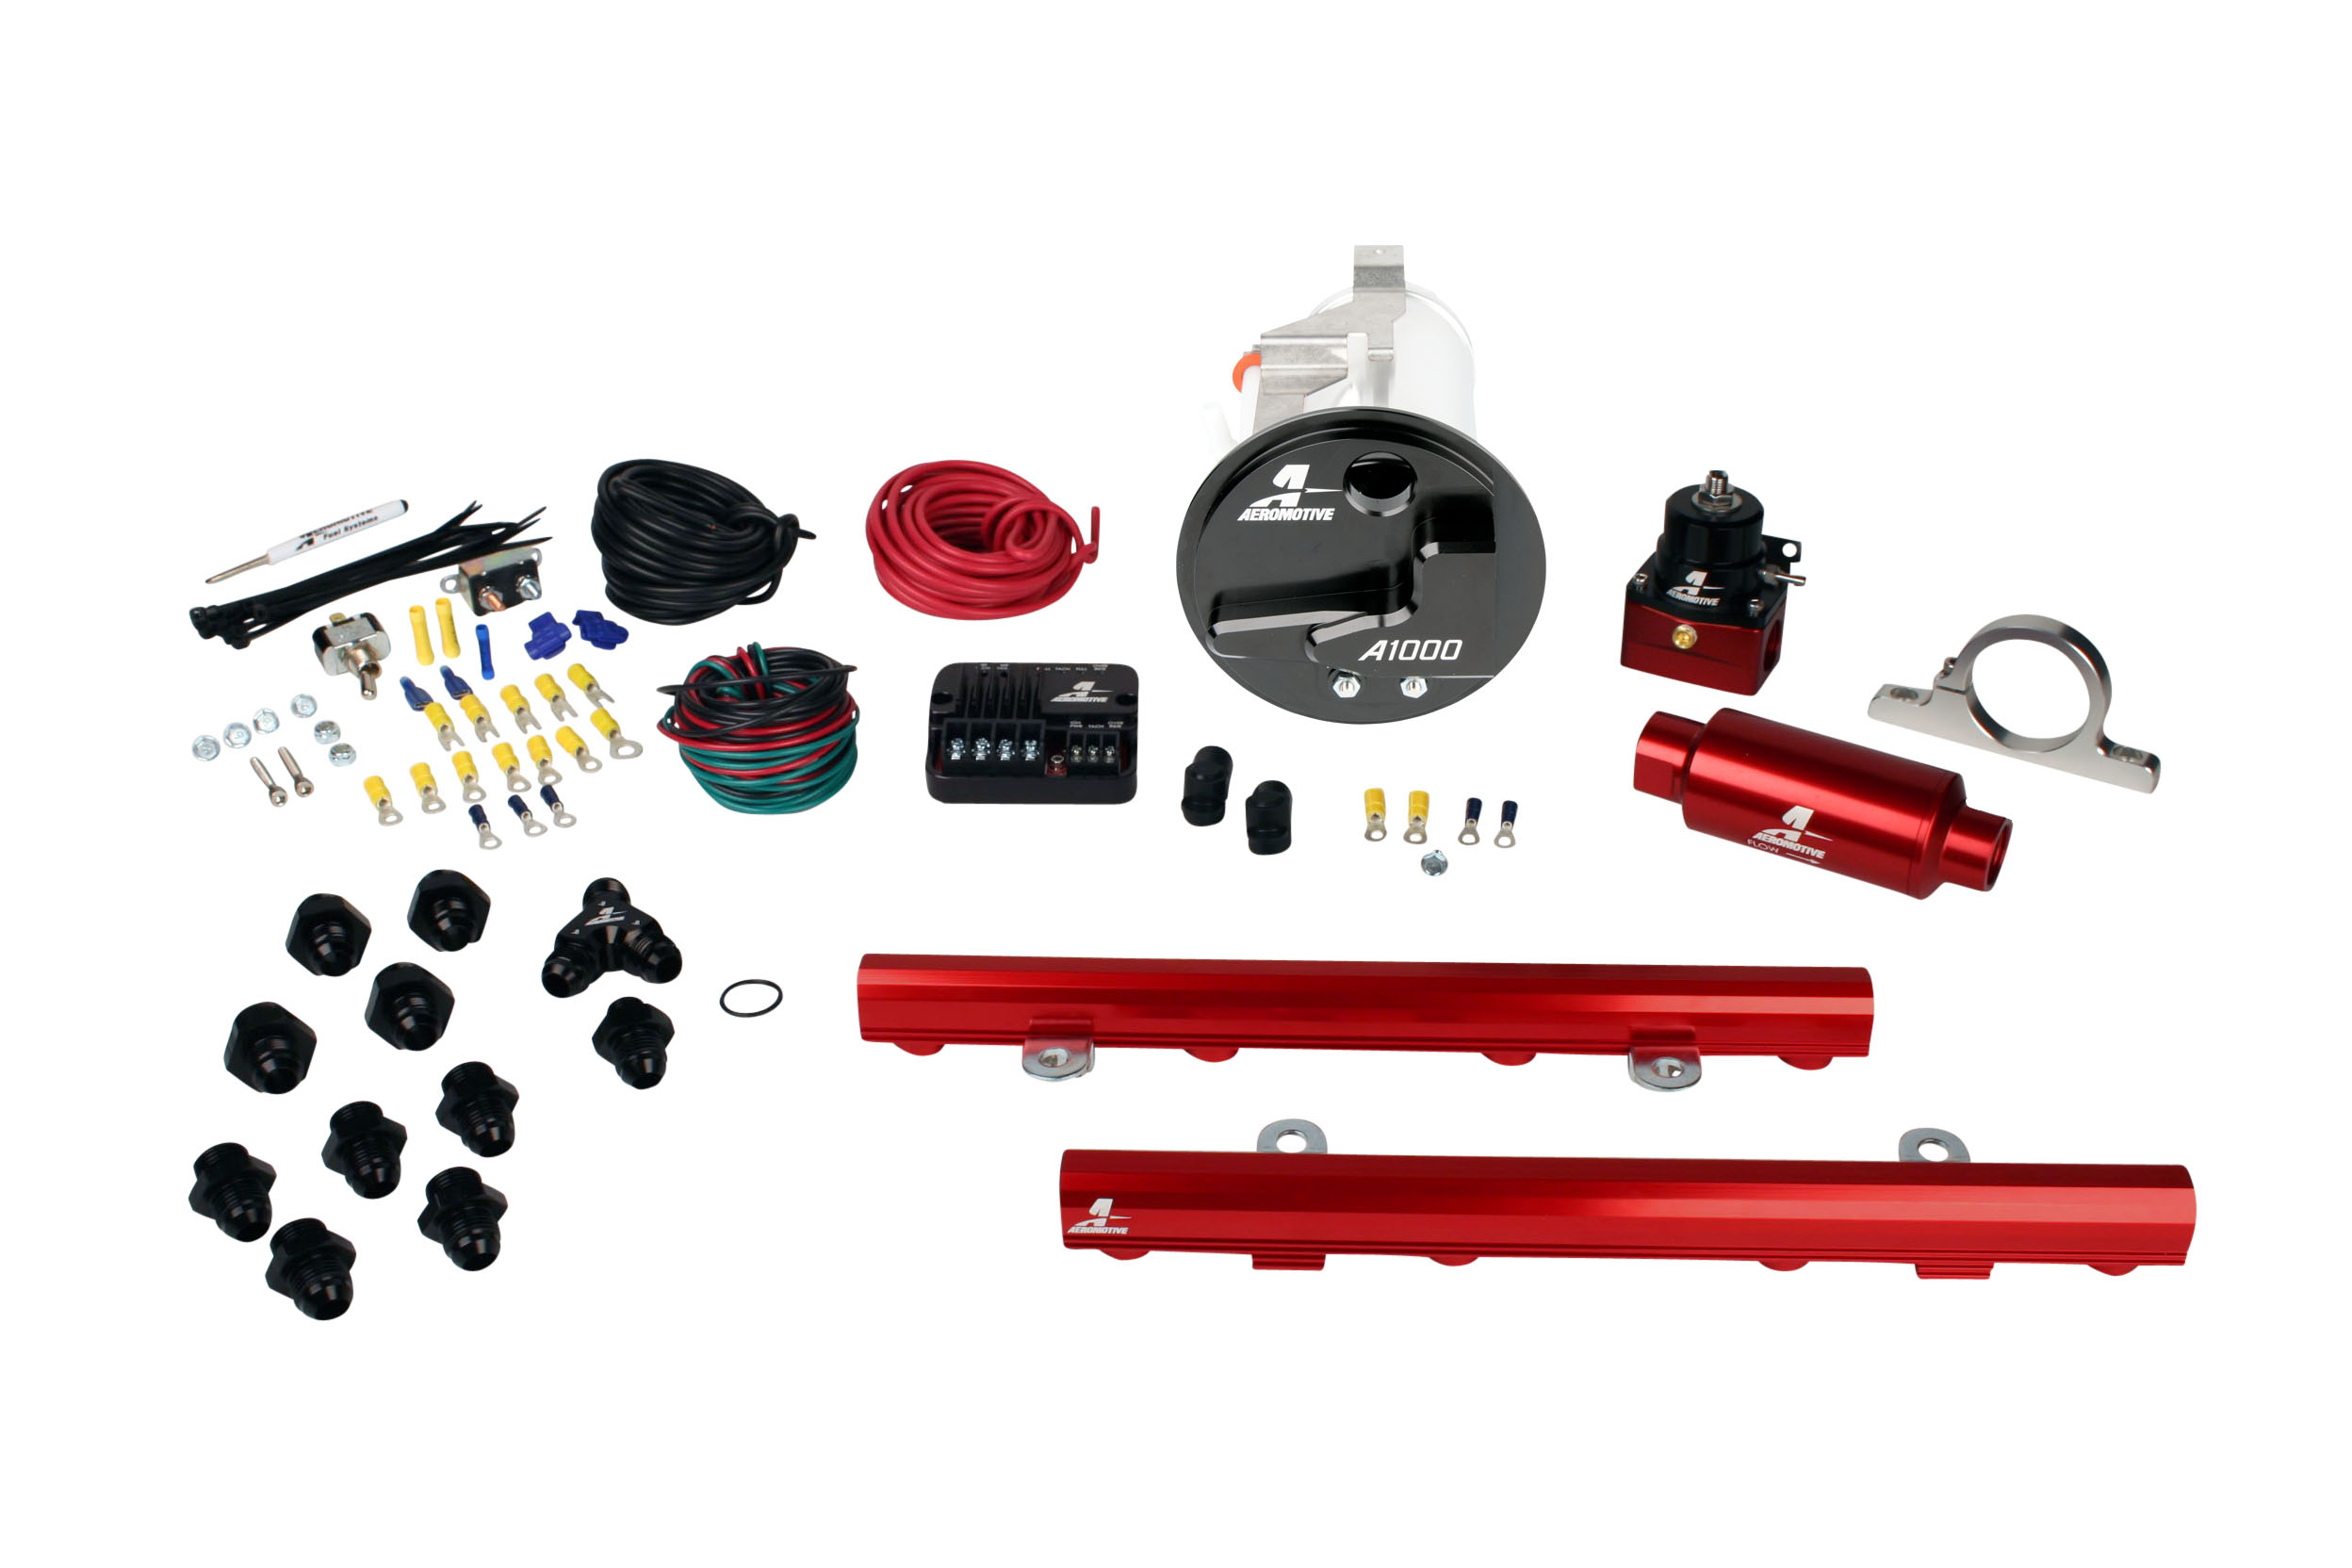 2005-2009 Ford Mustang GT Aeromotive Stealth A1000 Street Fuel System w/5.0L 4-V Fuel Rails Coyote Swap